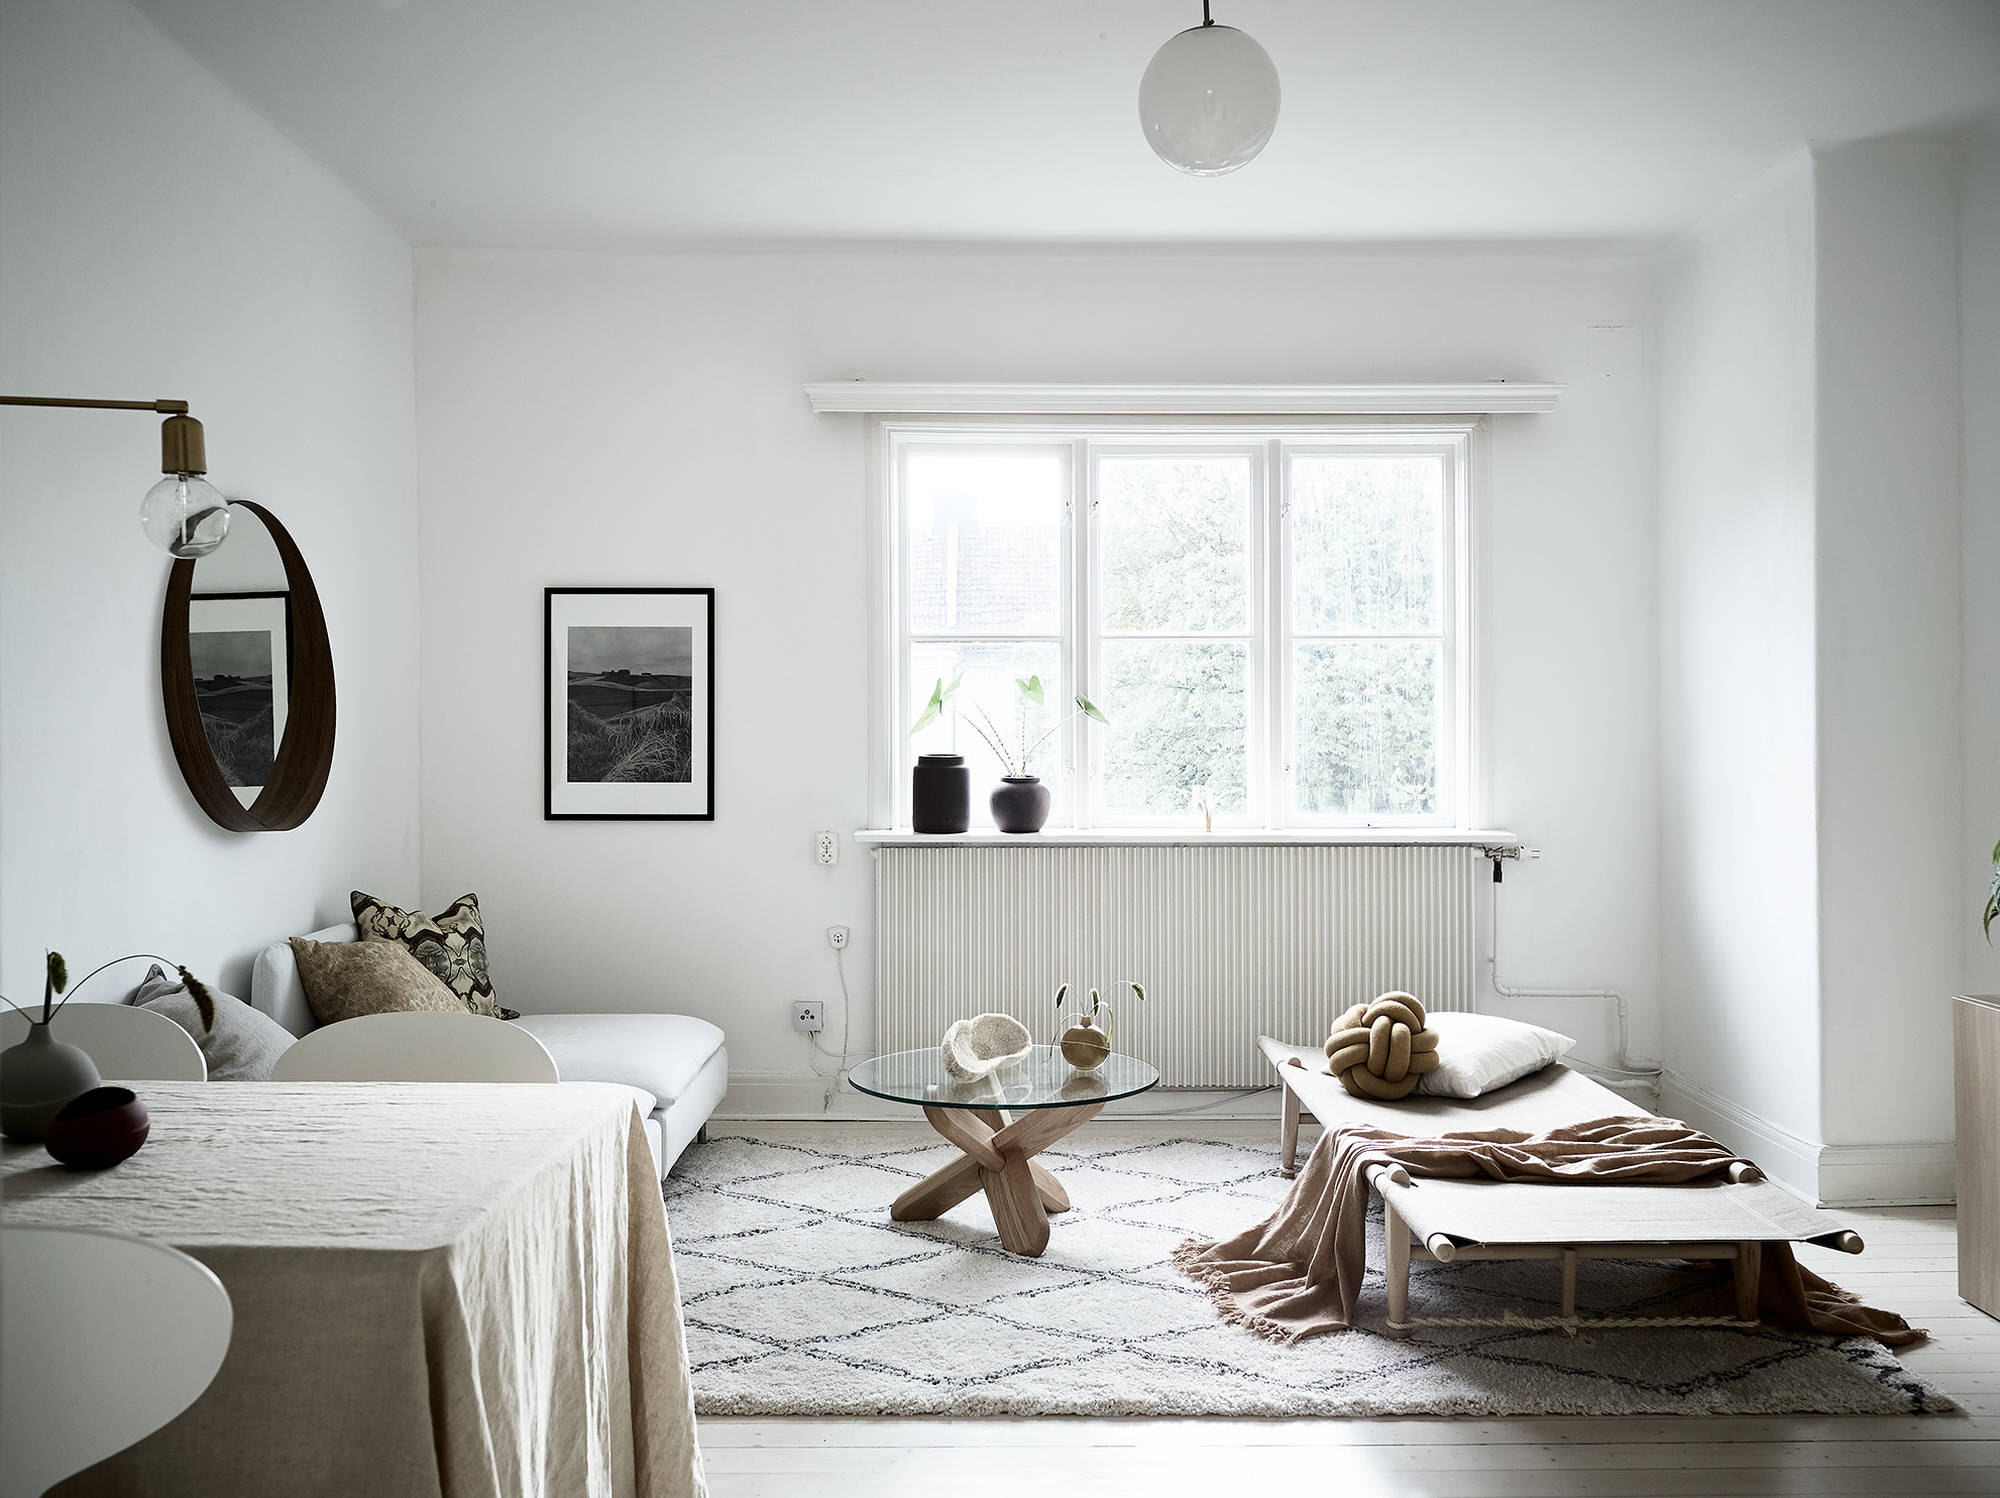 Minimal living room in natural colors - COCO LAPINE ...